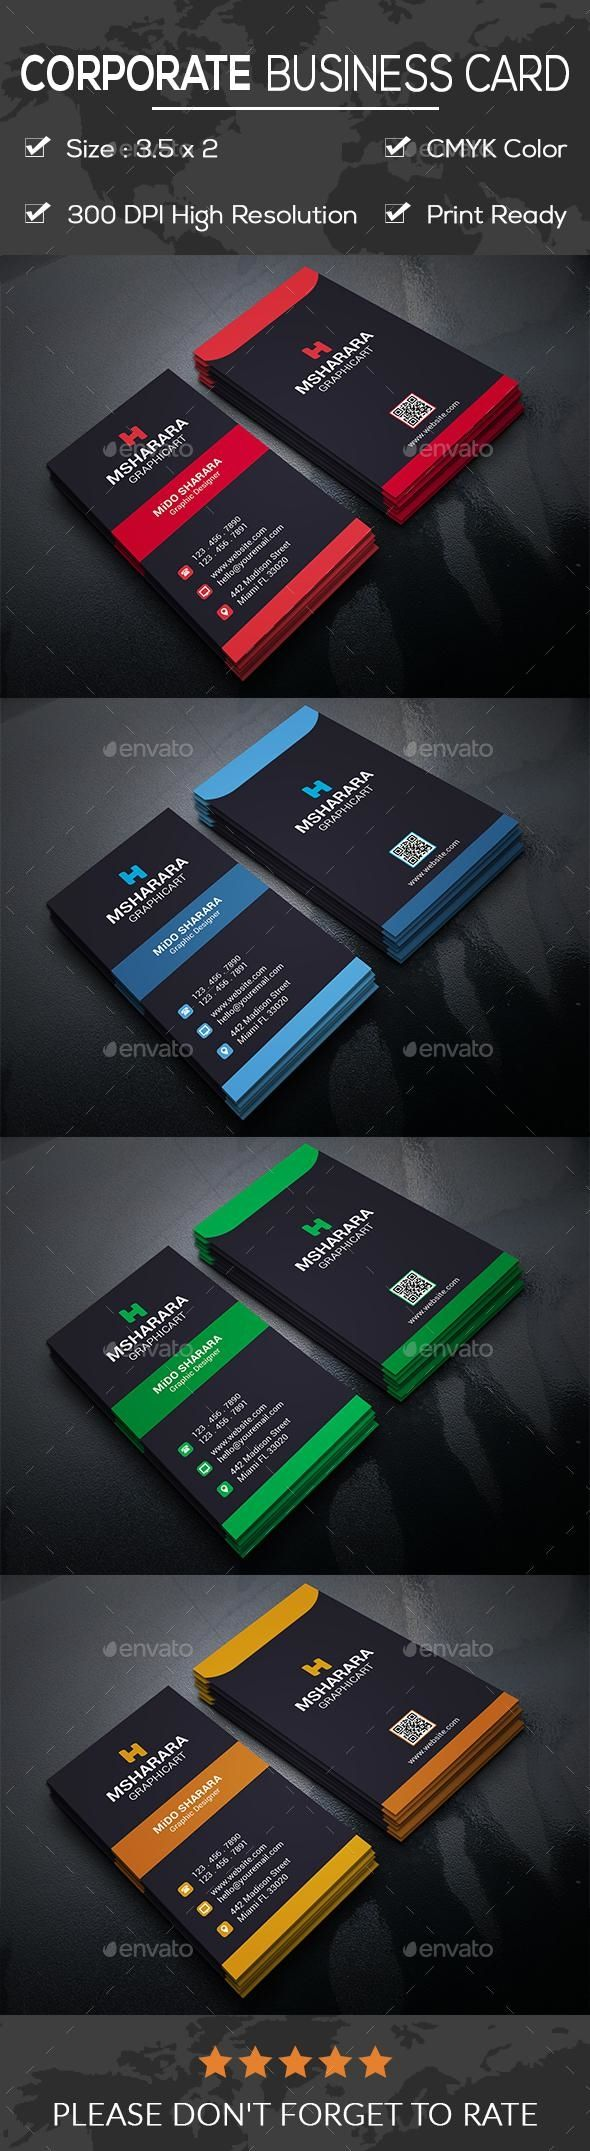 Corporate Business Card Business Card Template Psd Corporate